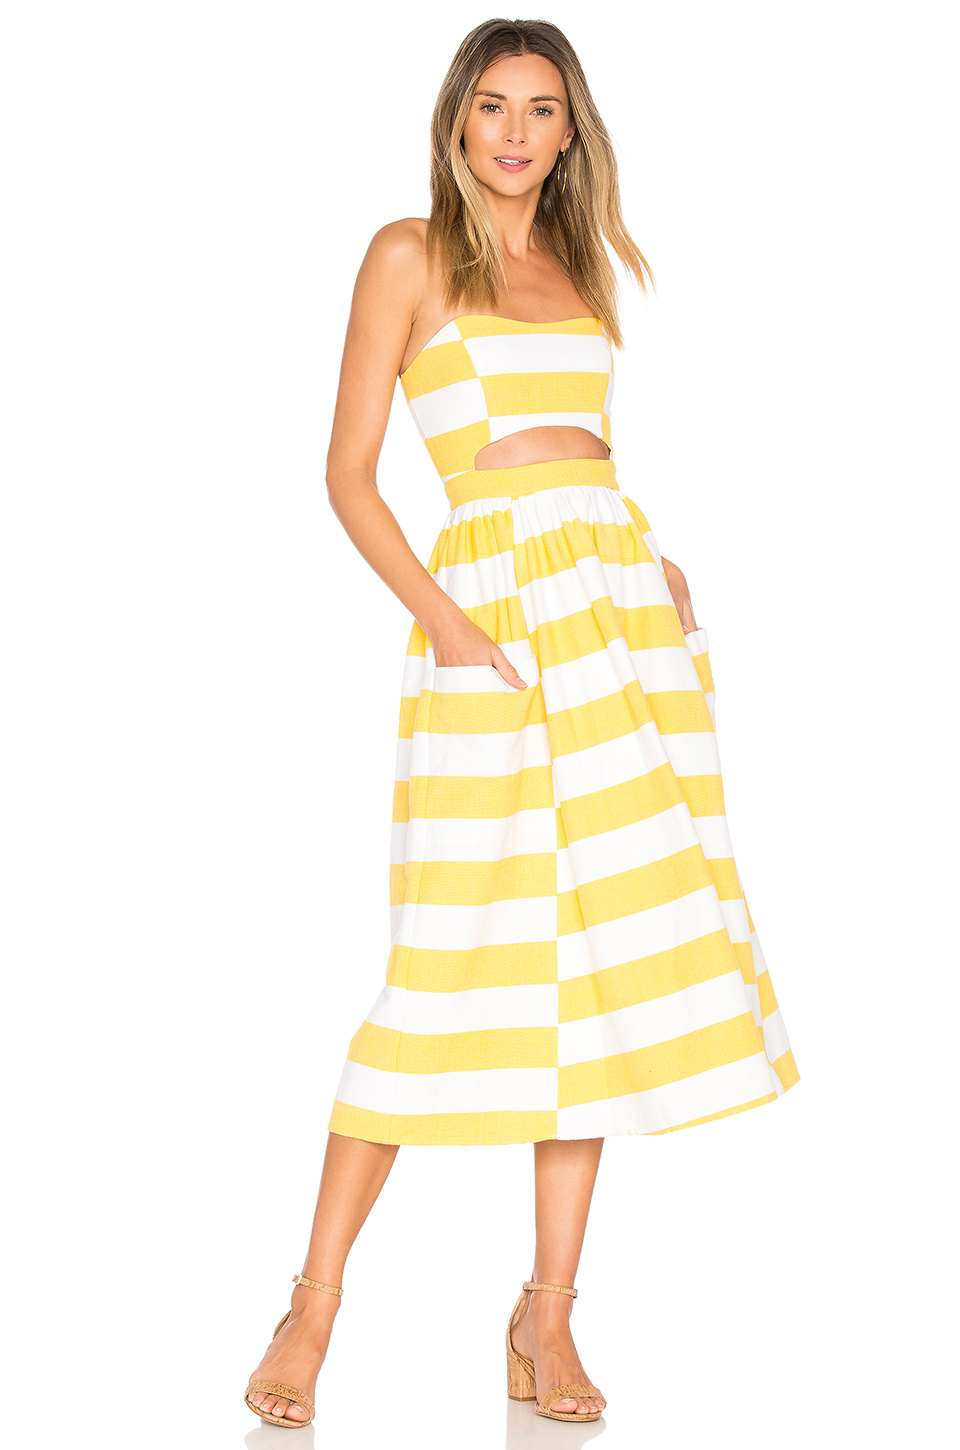 Mara Hoffman Cut Out Midi Dress, $350 from Revolve, Photo Cred Revolve